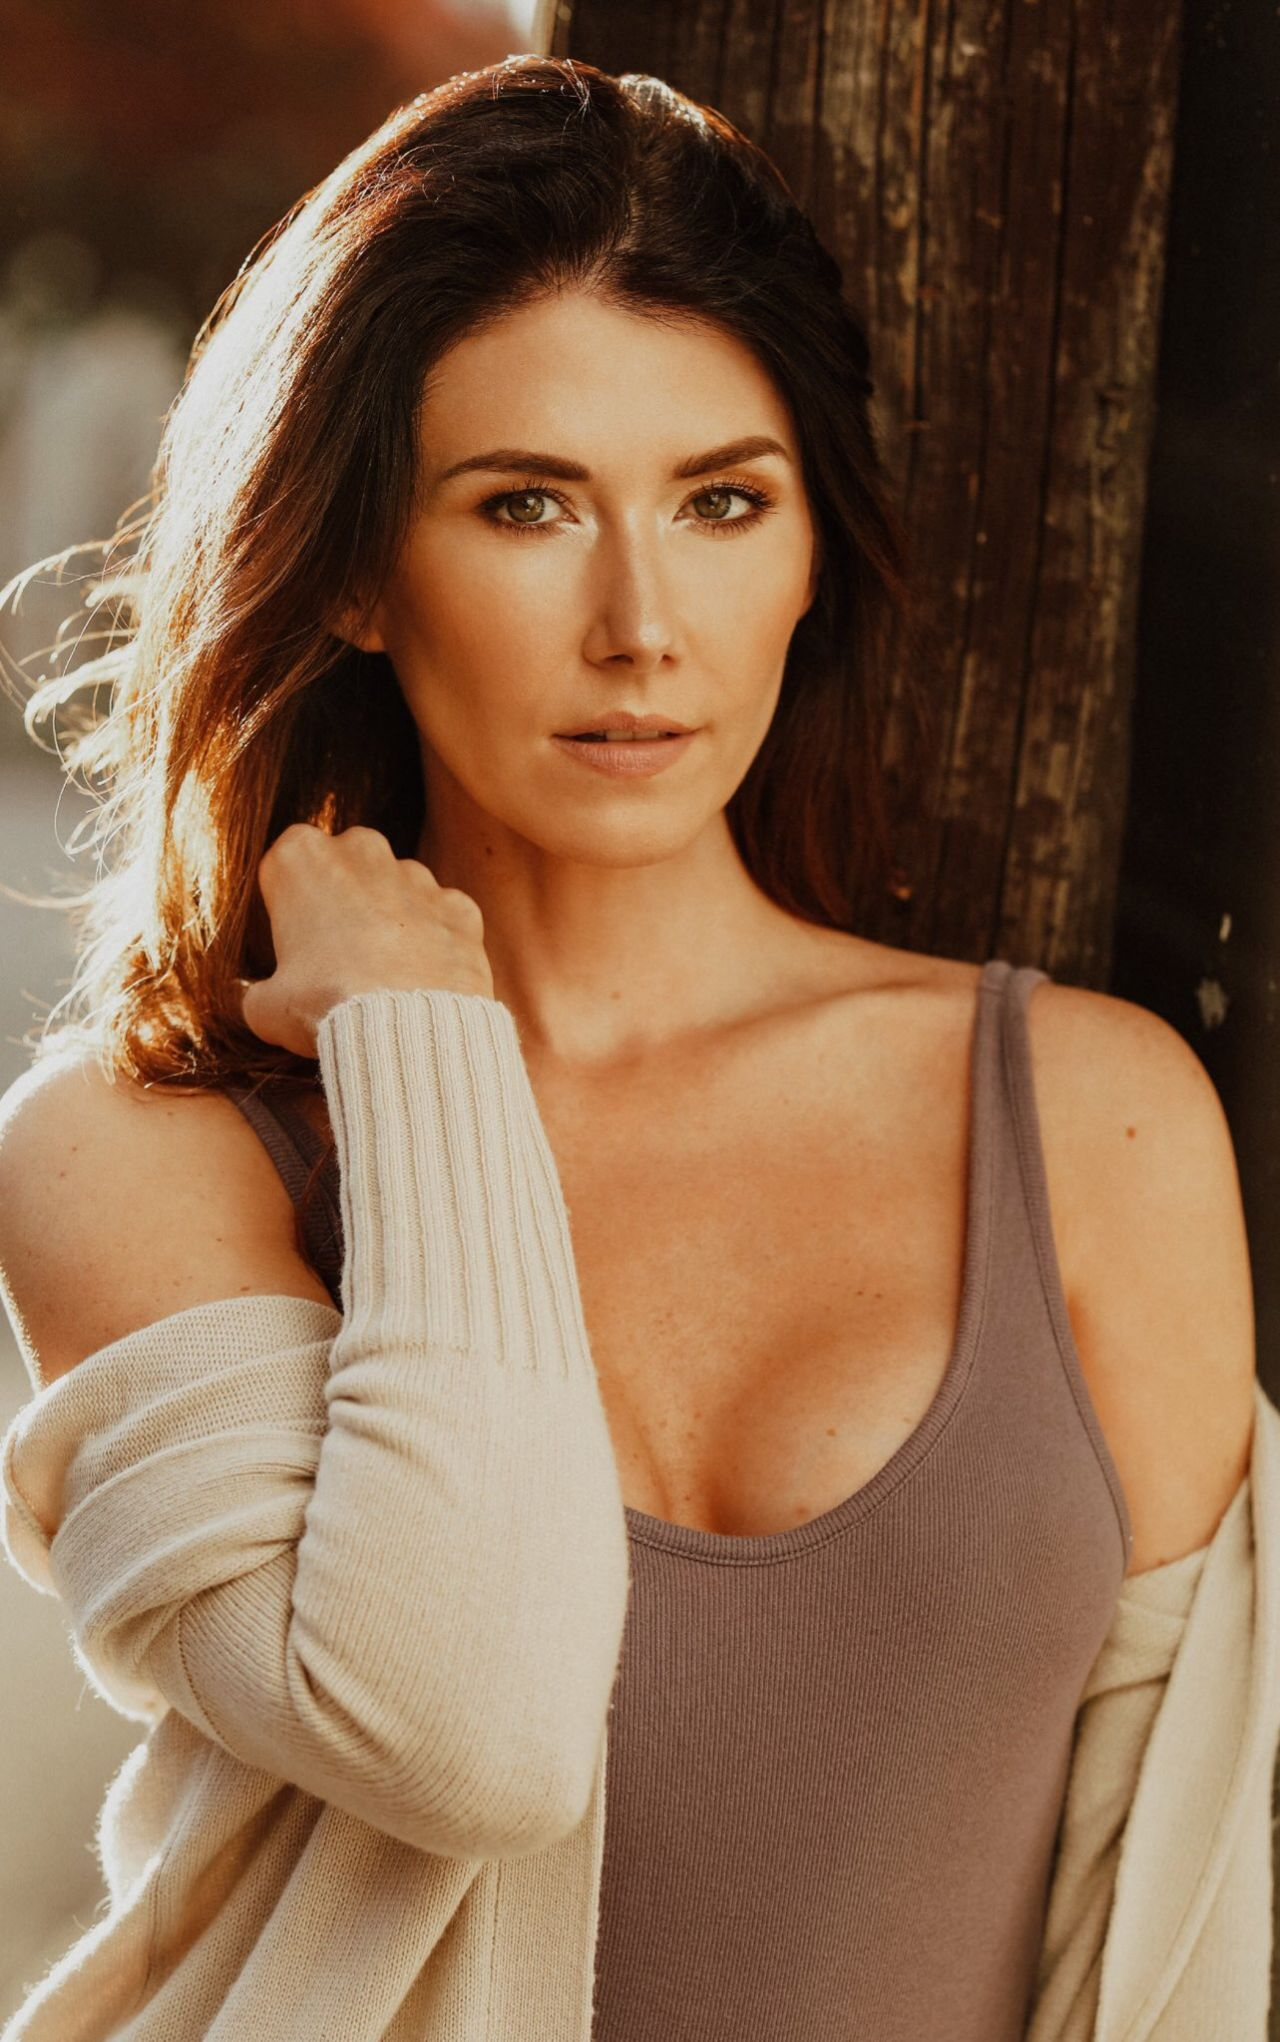 swimsuit 2019 Jewel Staite naked photo 2017